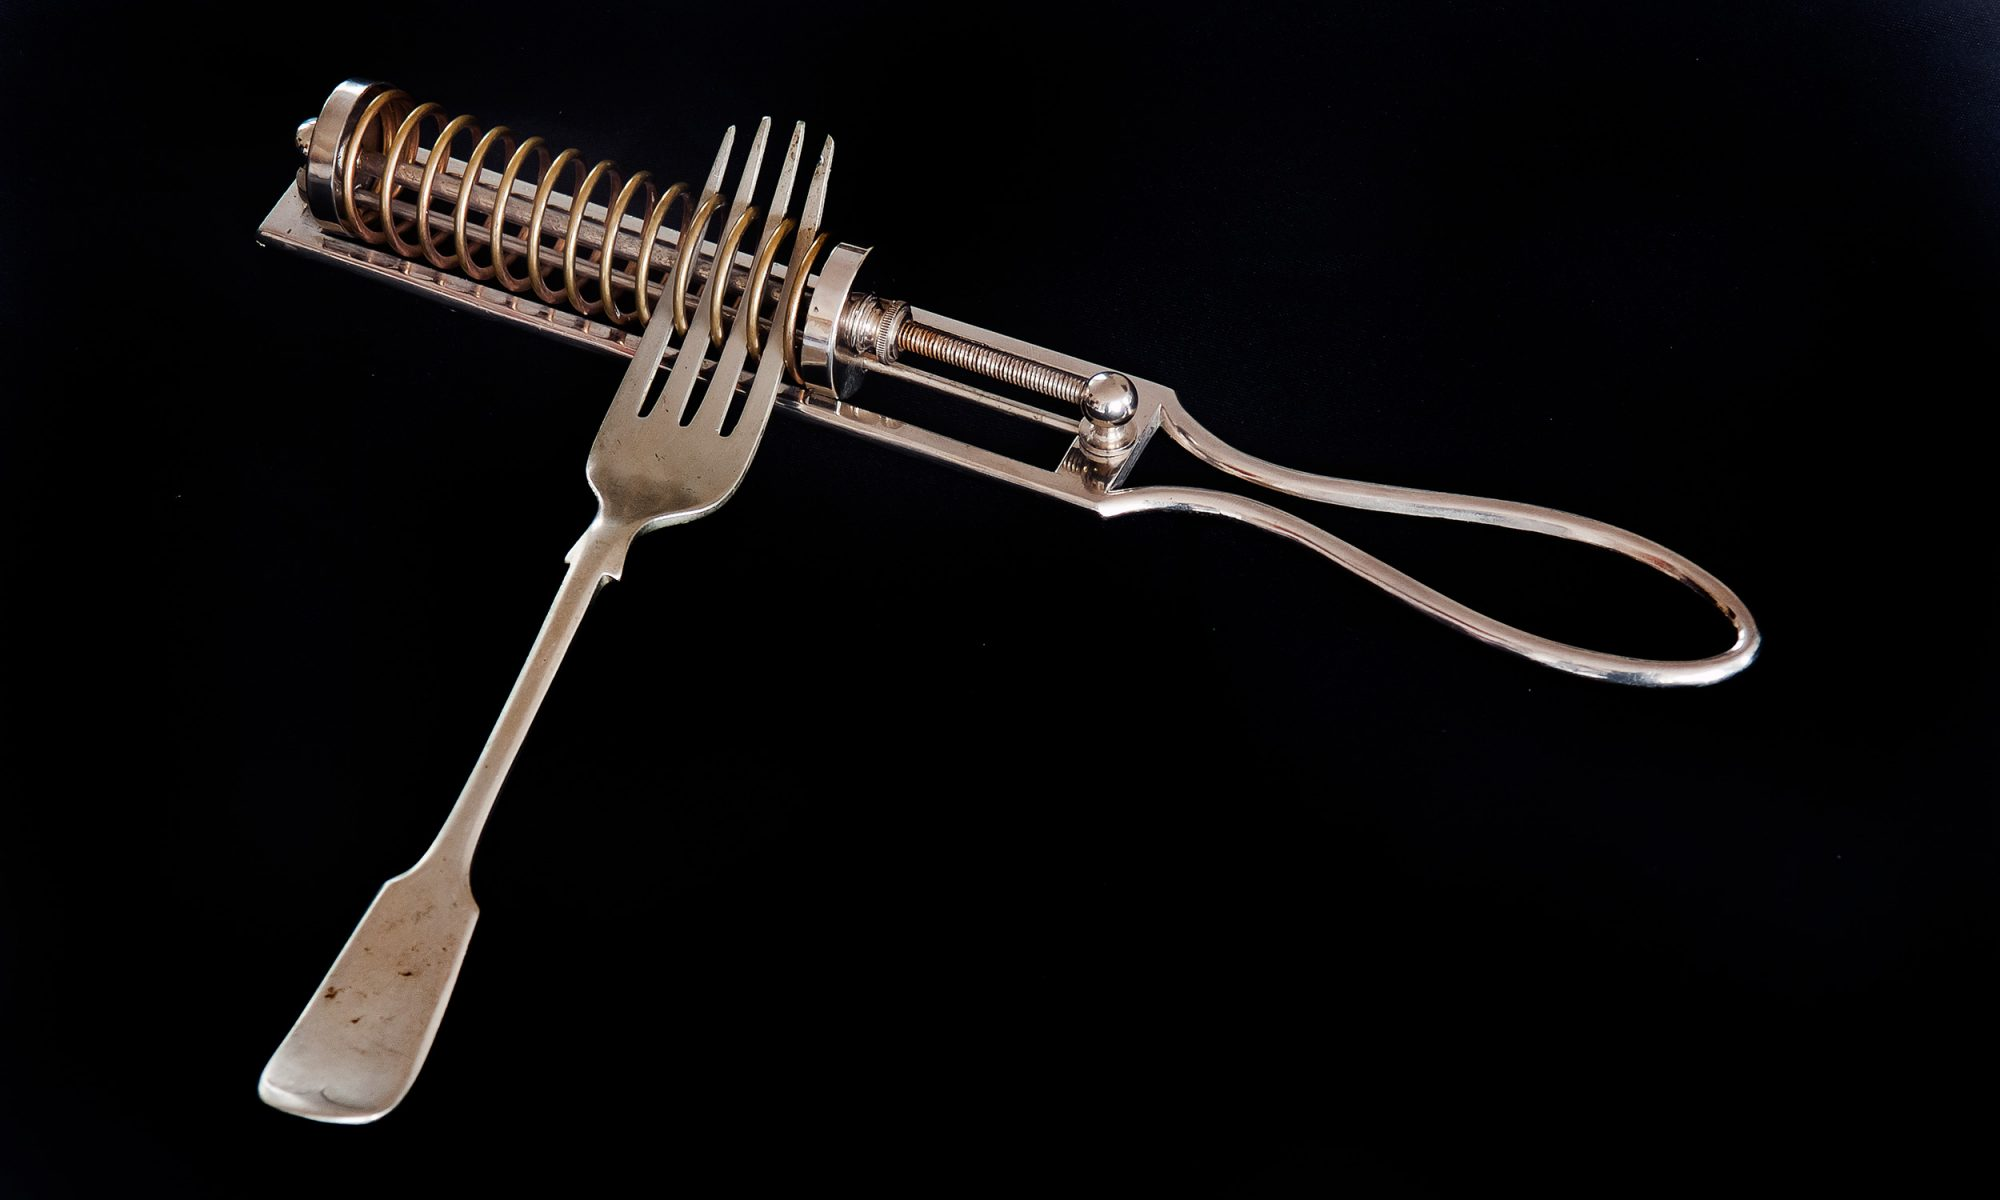 These Old Kitchen Gadgets Look Strange But People Actually